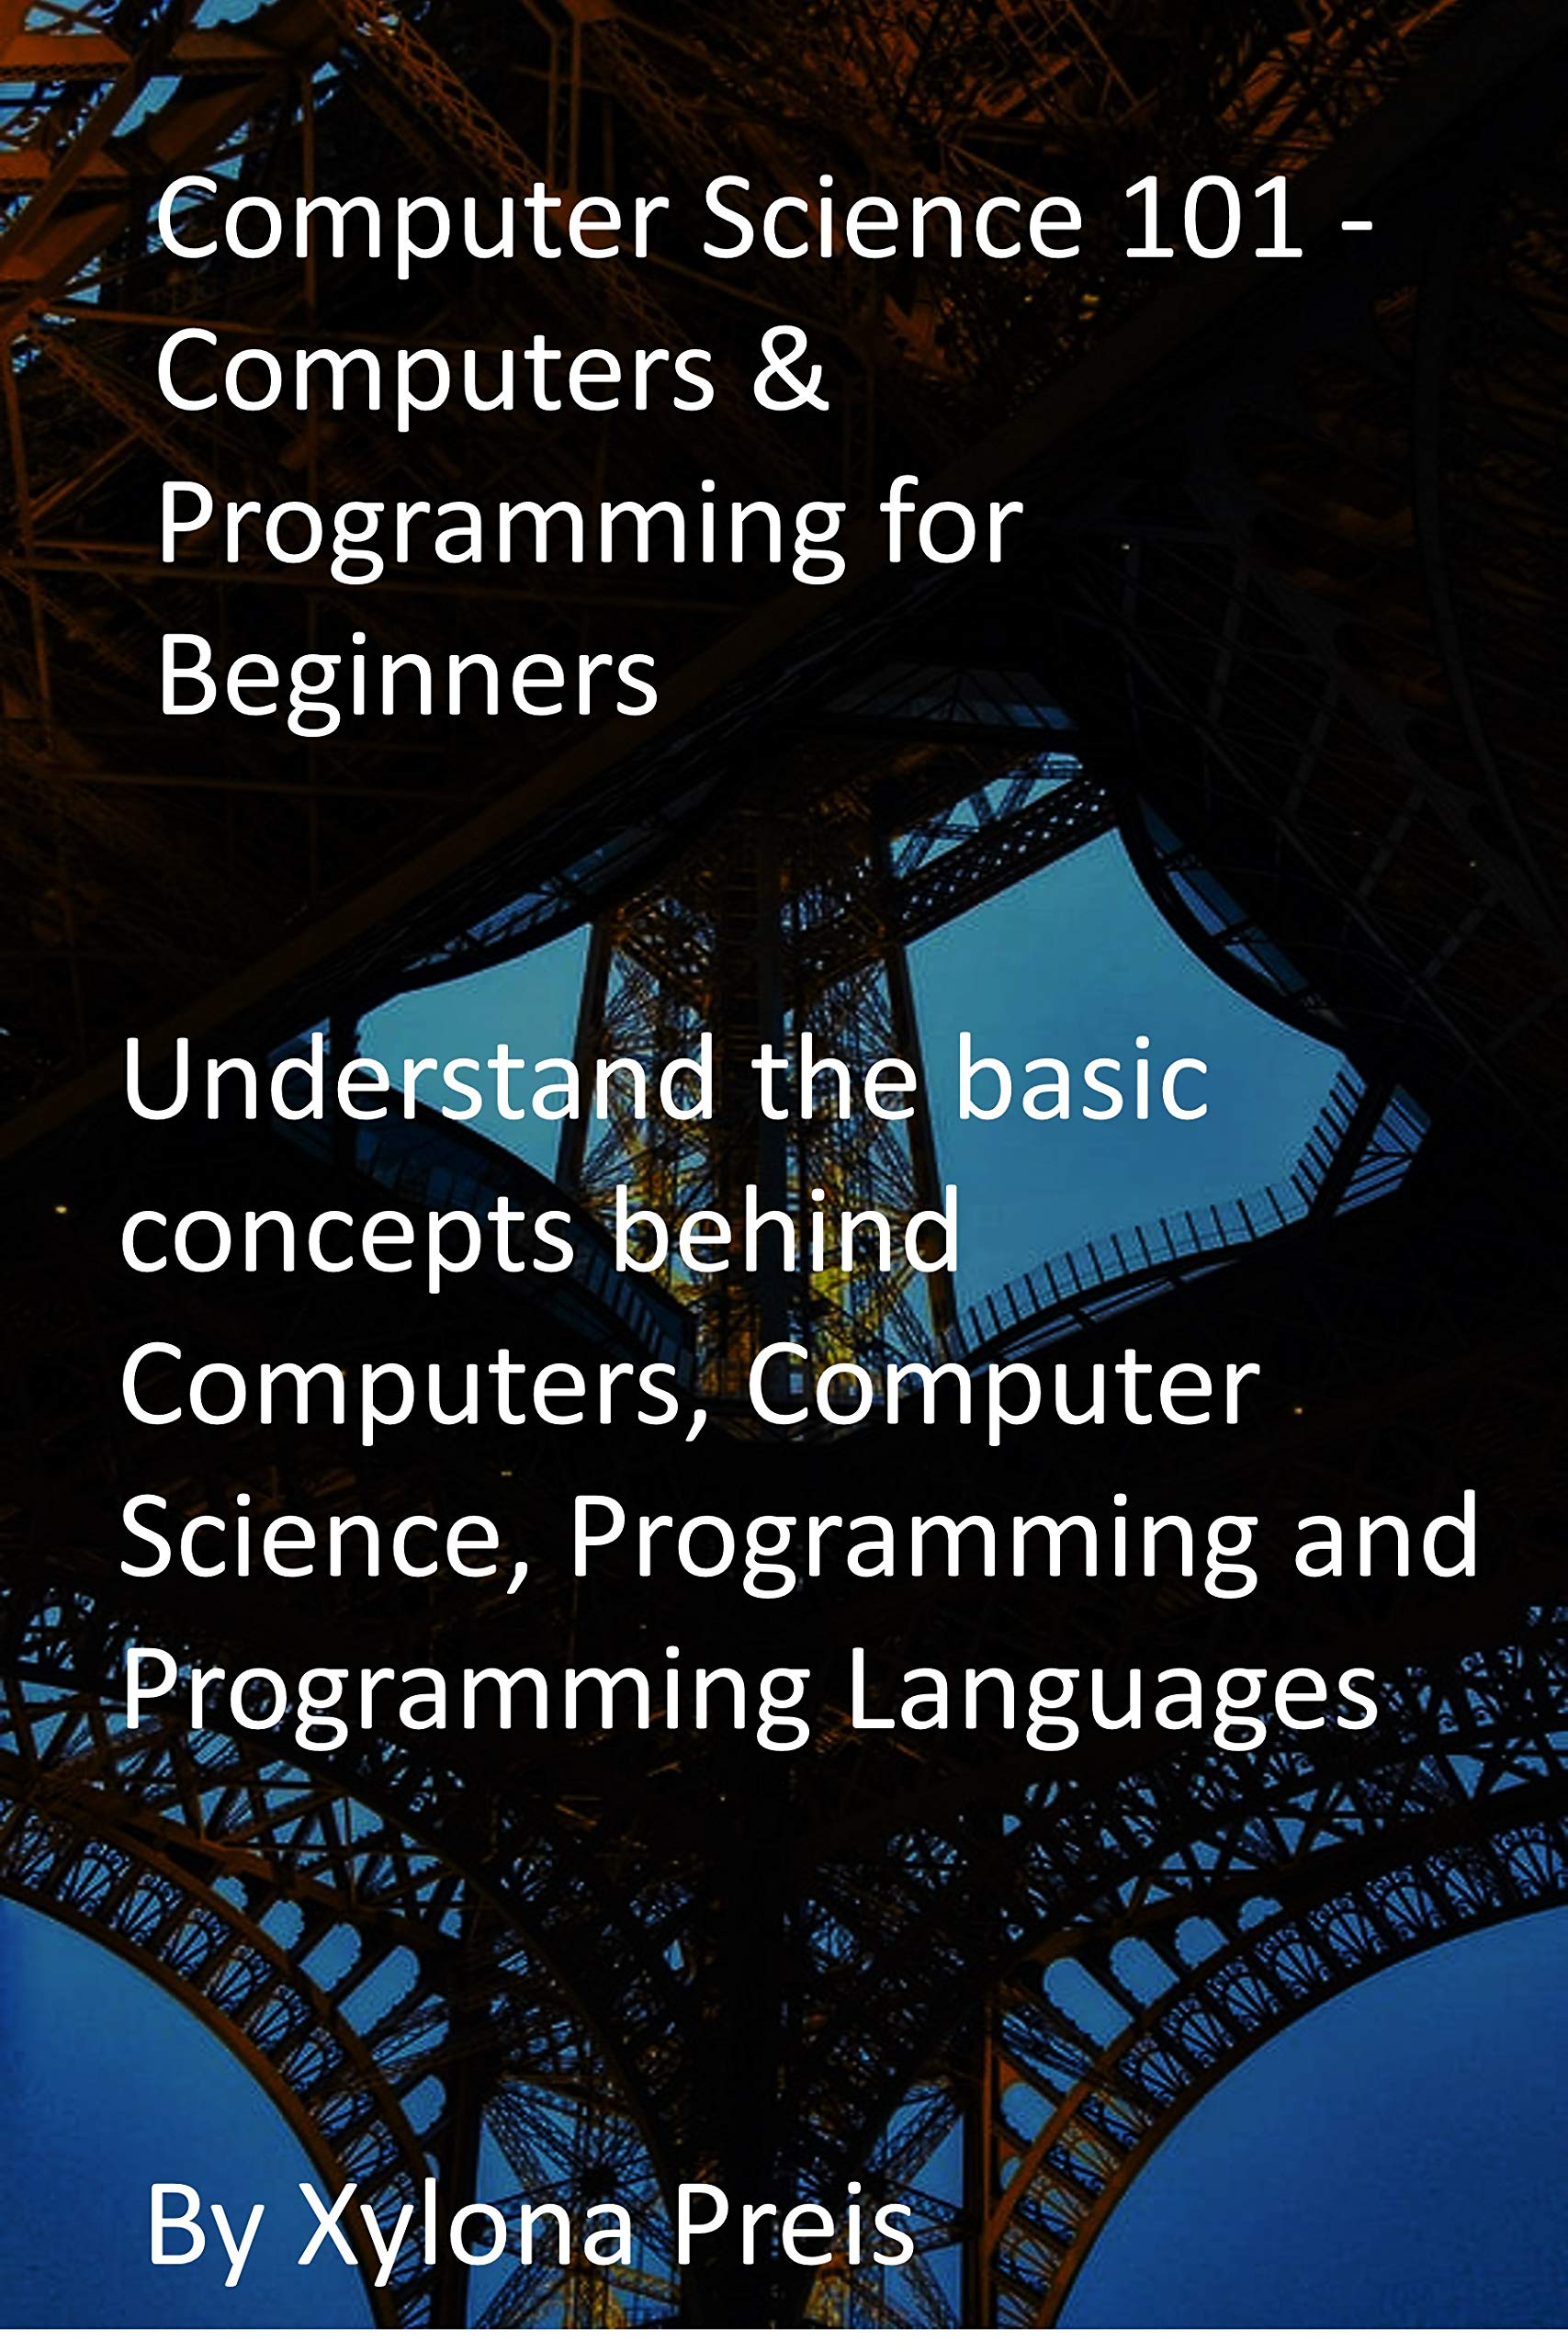 Computer Science 101 - Computers & Programming for Beginners: Understand the basic concepts behind Computers, Computer Science, Programming and Programming Languages